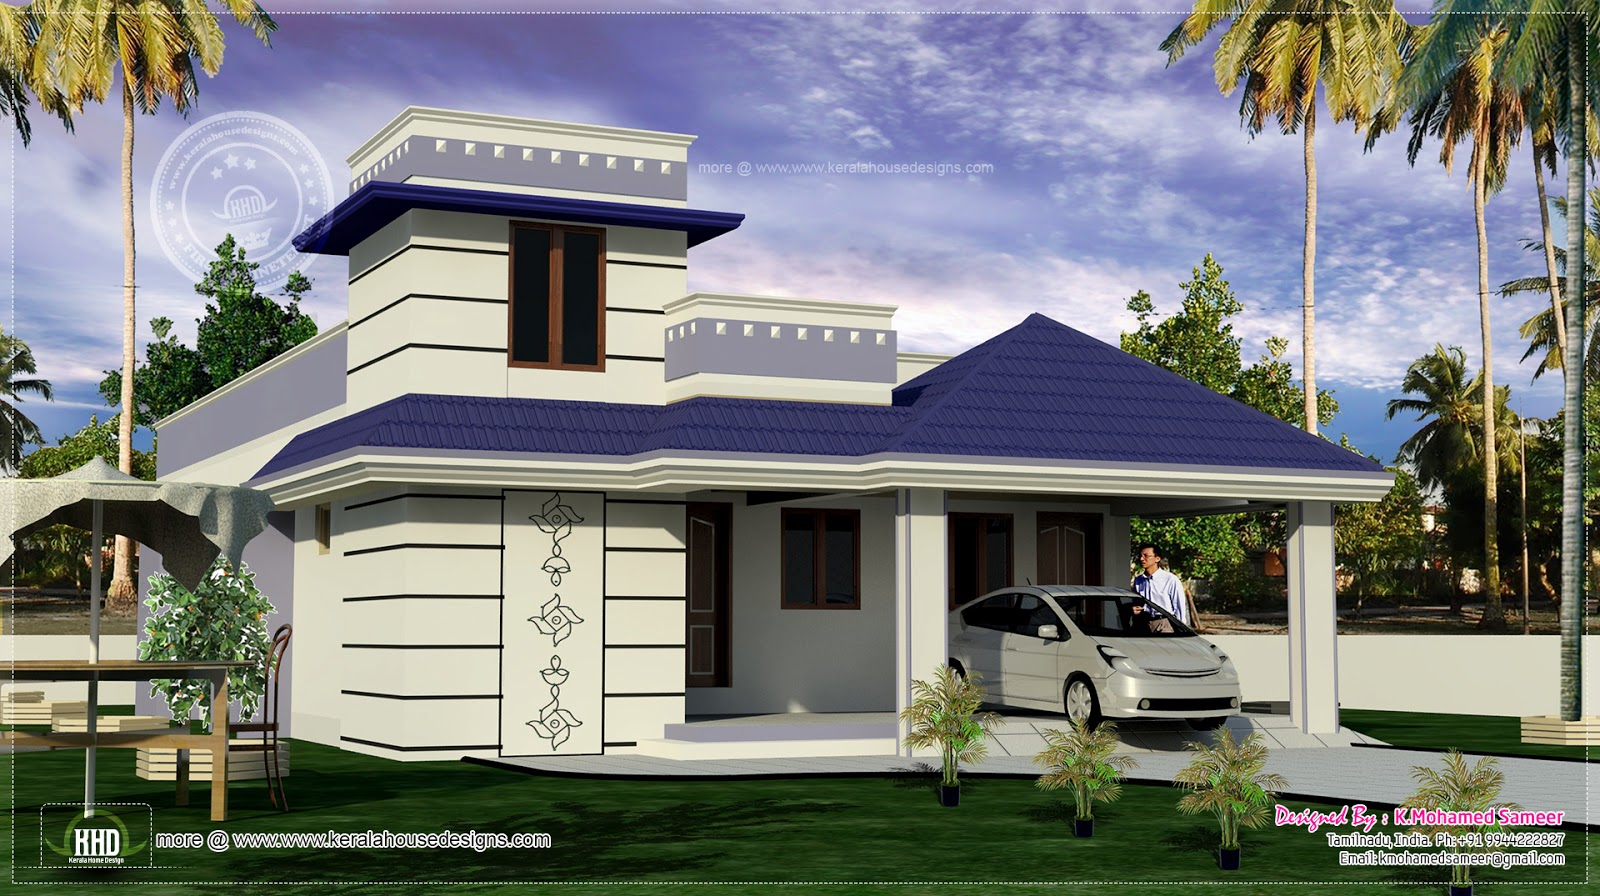 1700 one floor for south indian home kerala home for Indian house model